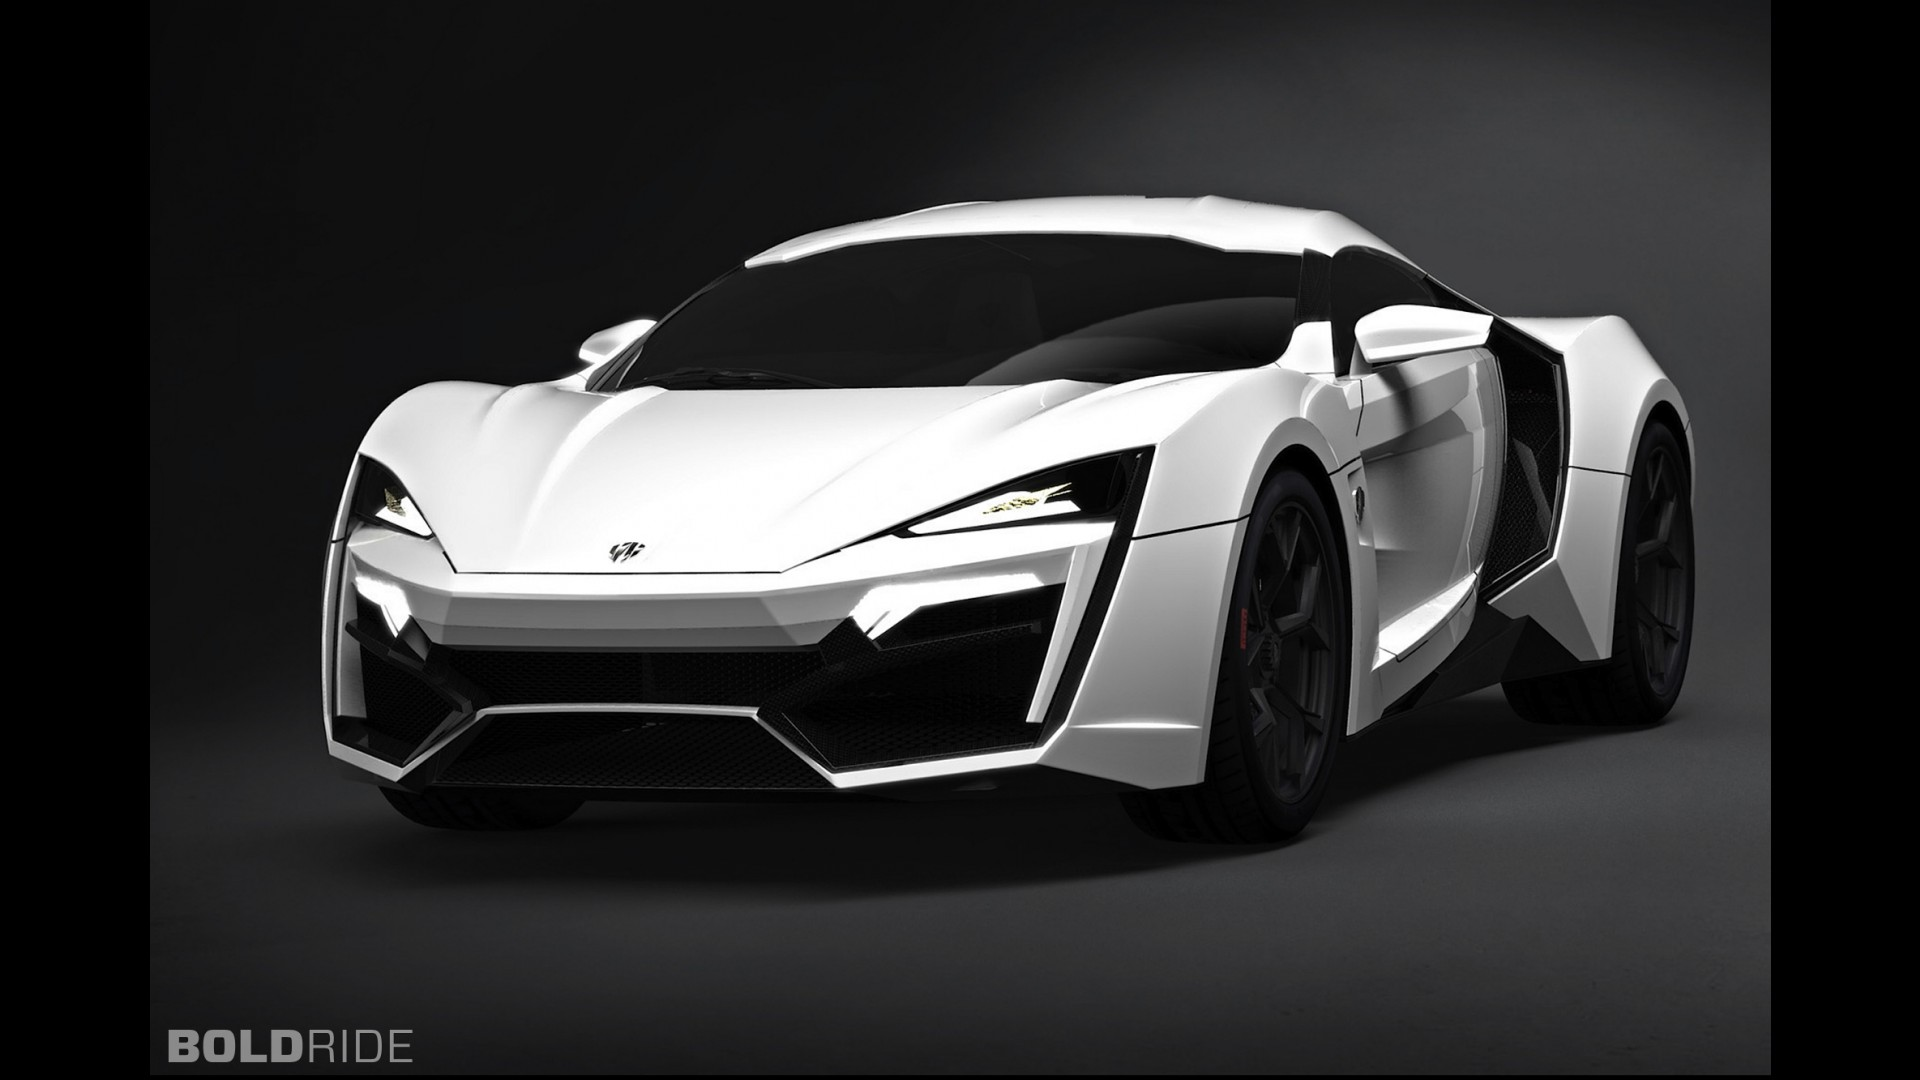 W motors lykan hypersport - Lykan hypersport wallpaper 1920x1080 ...